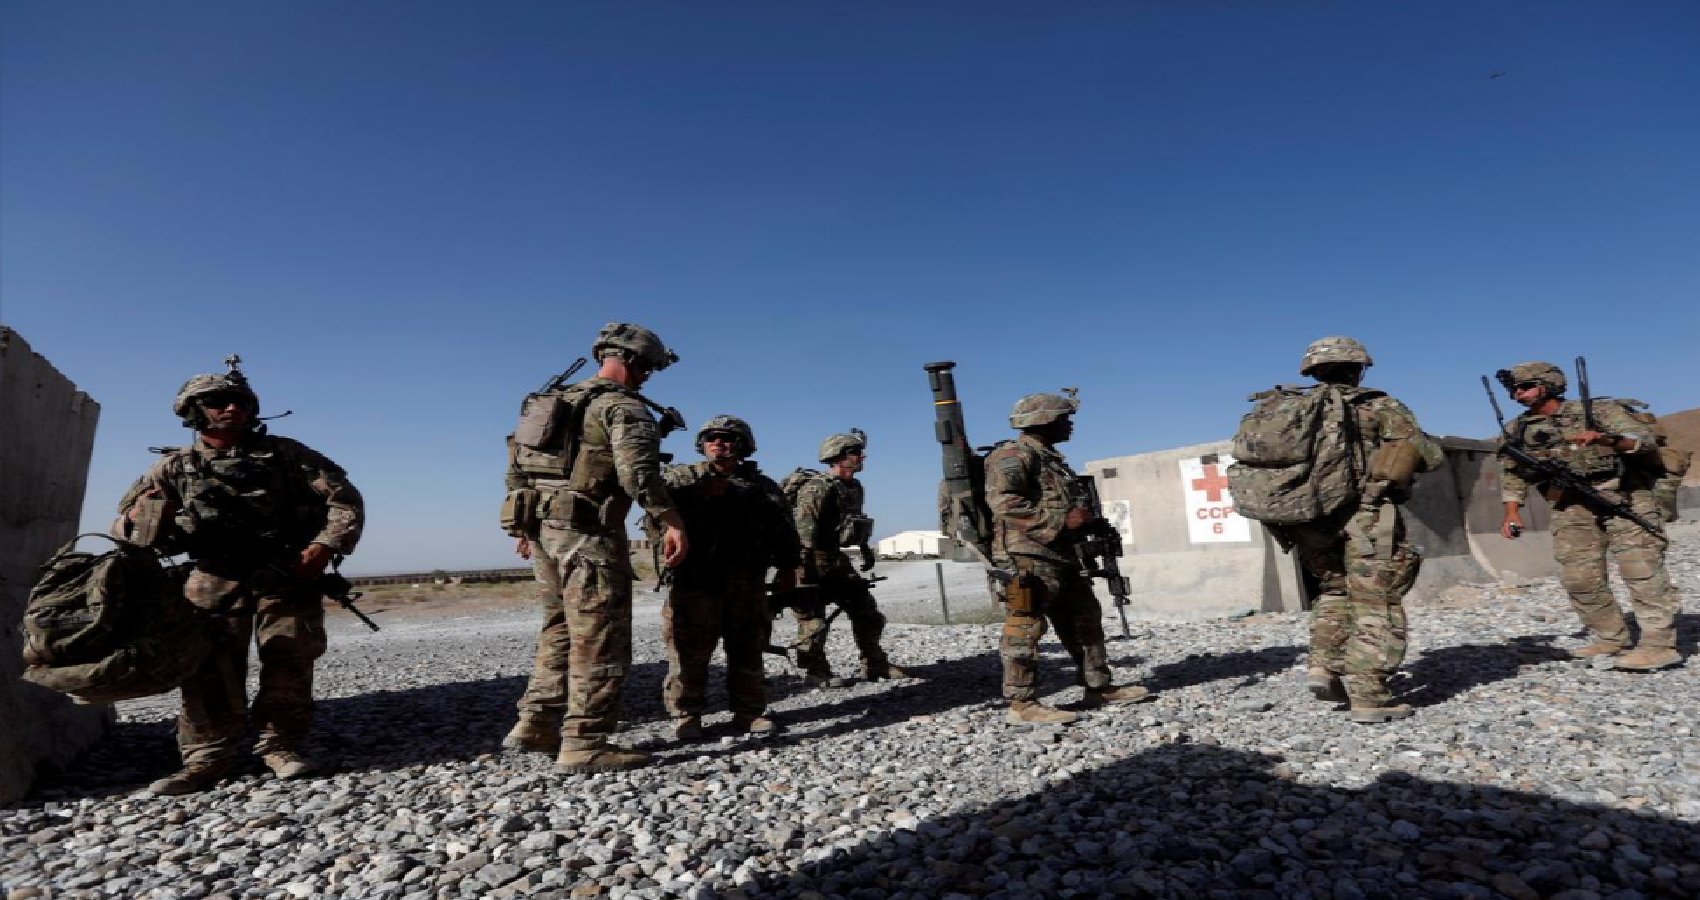 US Withdrawal From Afghanistan Raises Fears Of Renewed Violence